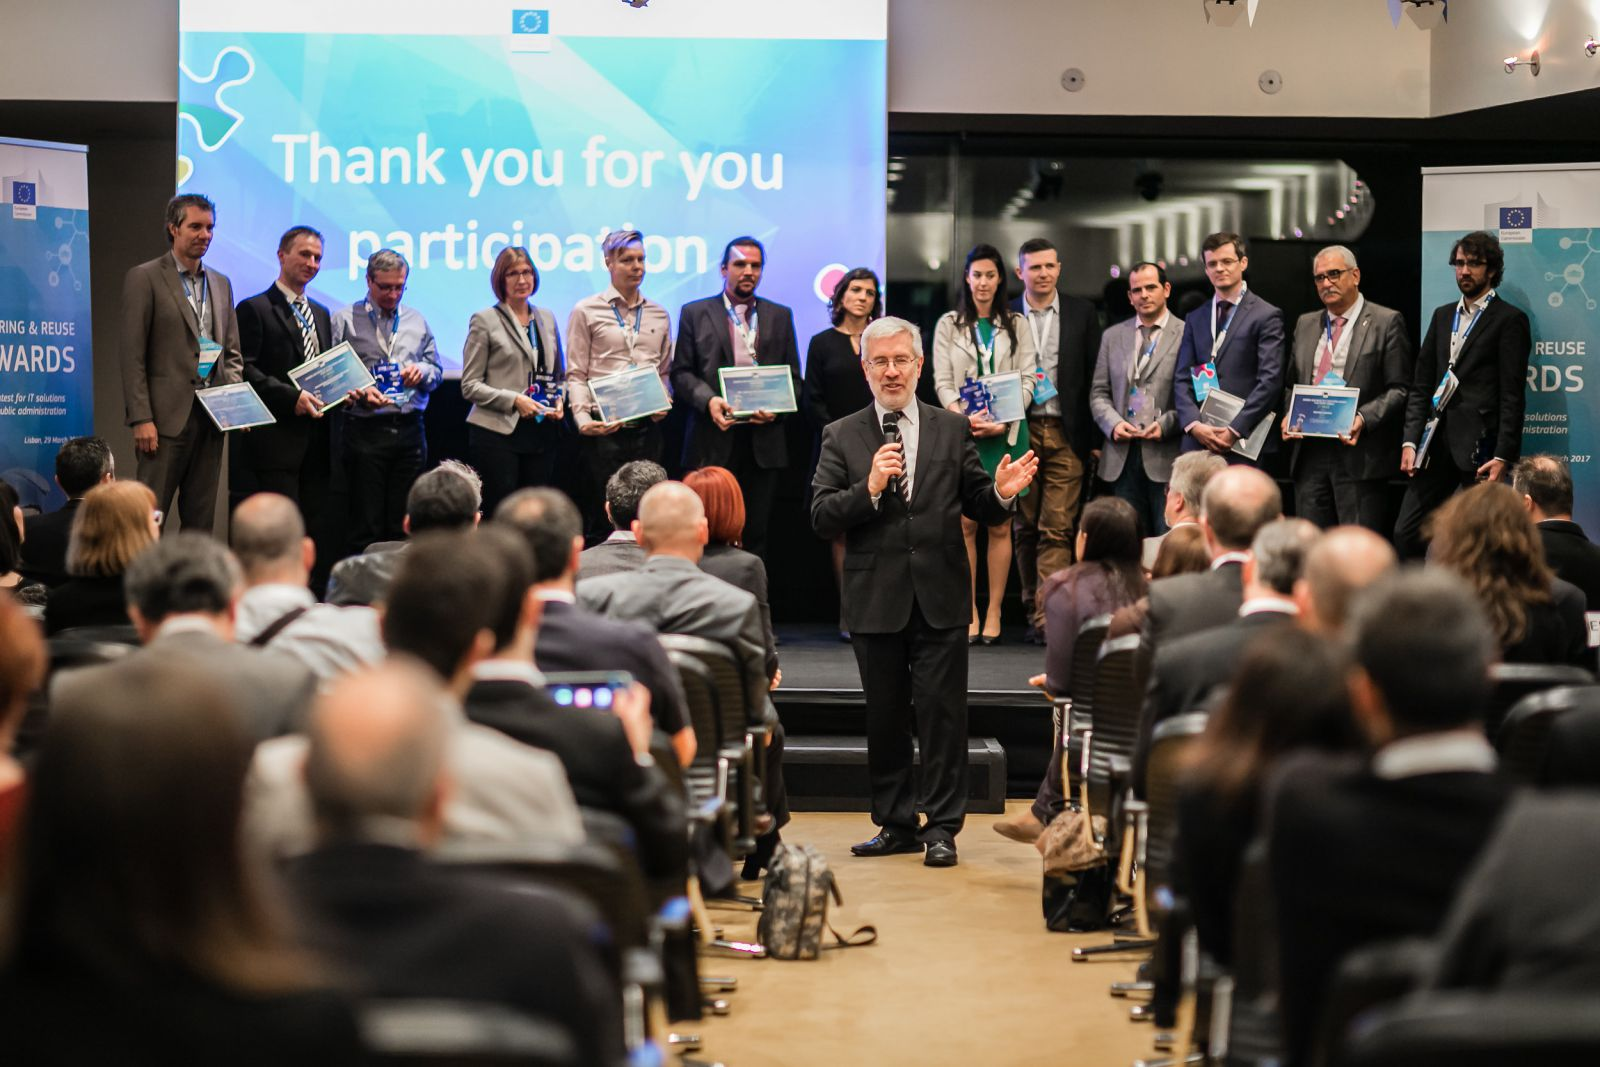 Mário Campolarg (center), Deputy Director General for the Directorate General of Informatics (DIGIT) of the European Commission, with the winners of the Sharing & Reuse Award